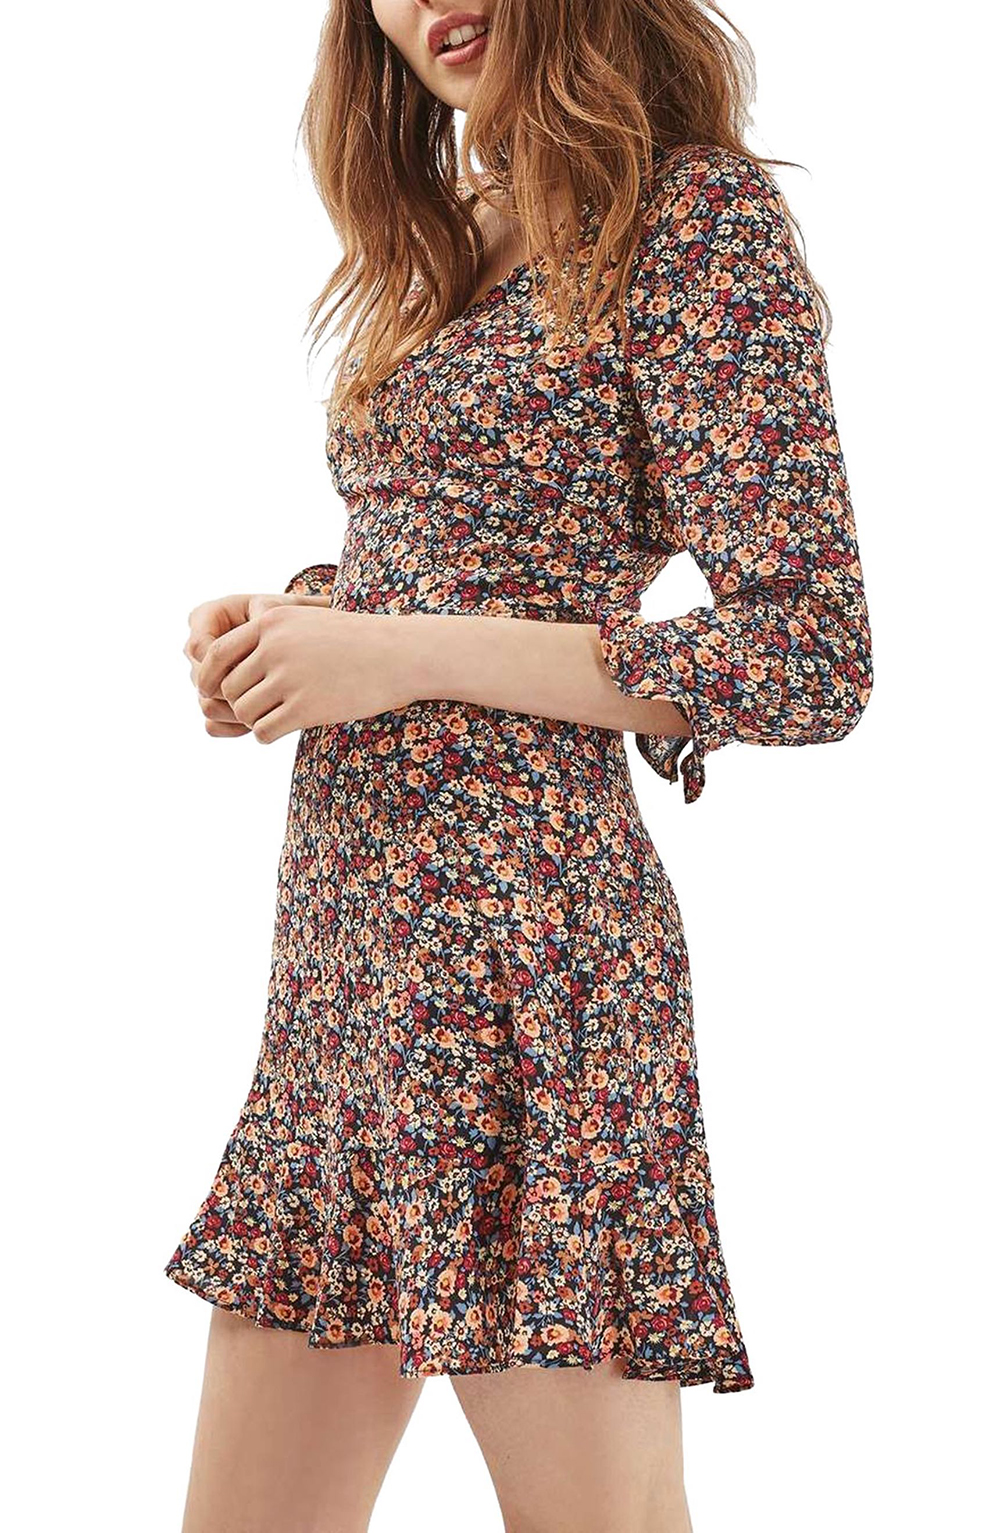 Topshop Peach Pop Ruffle Tea Dress - Wardrobe Refresh: Topshop for Spring